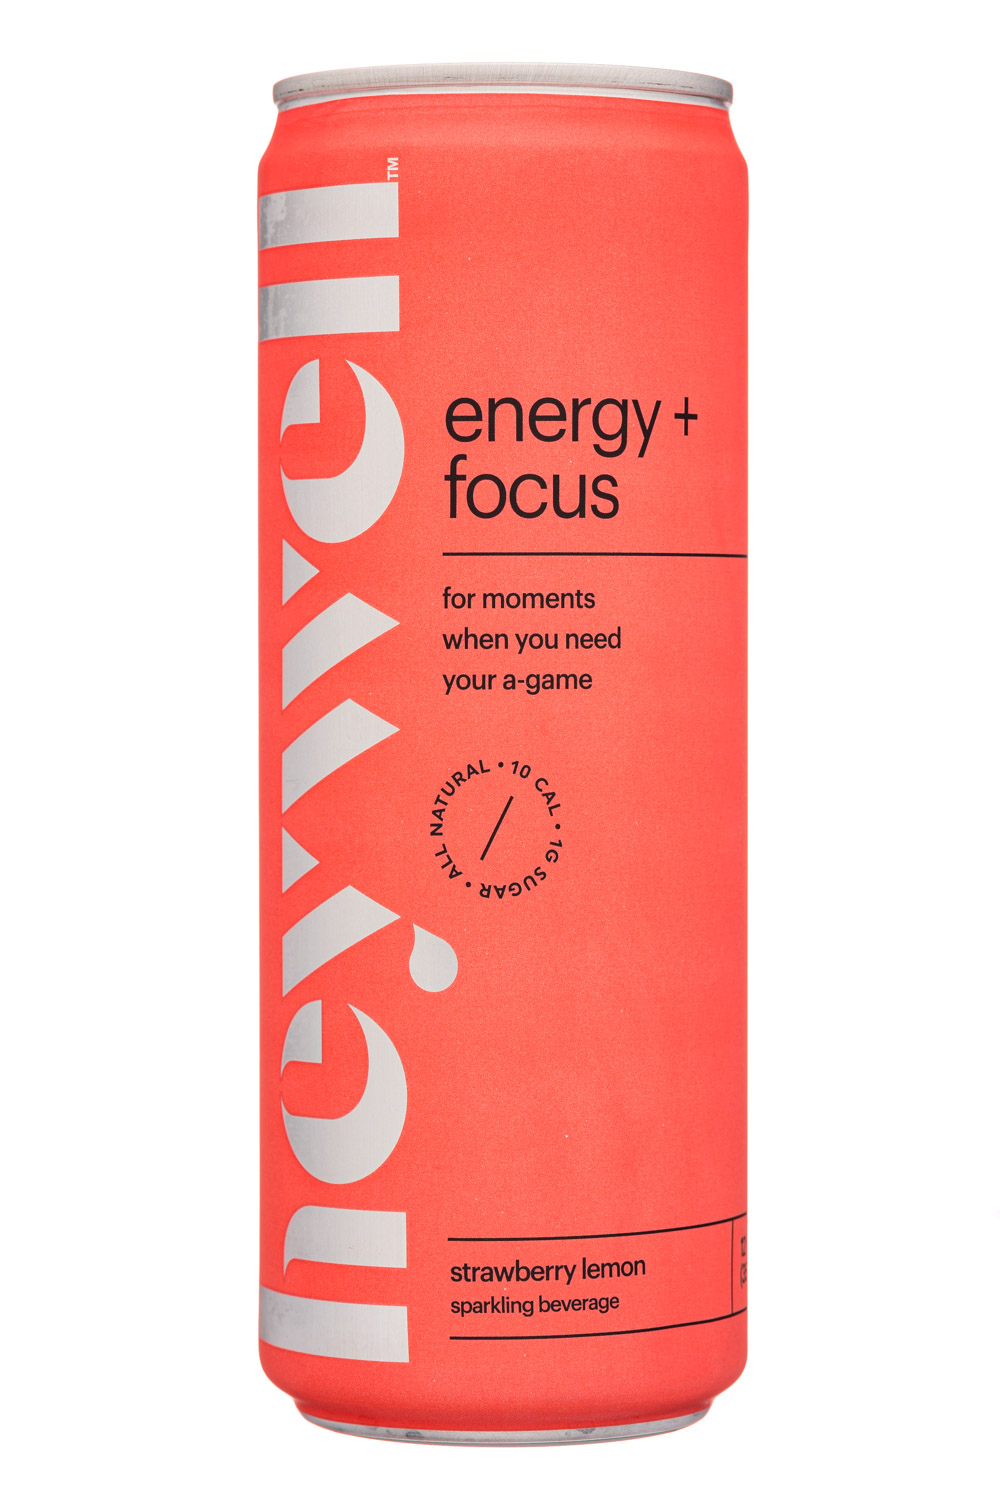 Energy + Focus - Strawberry Lemon